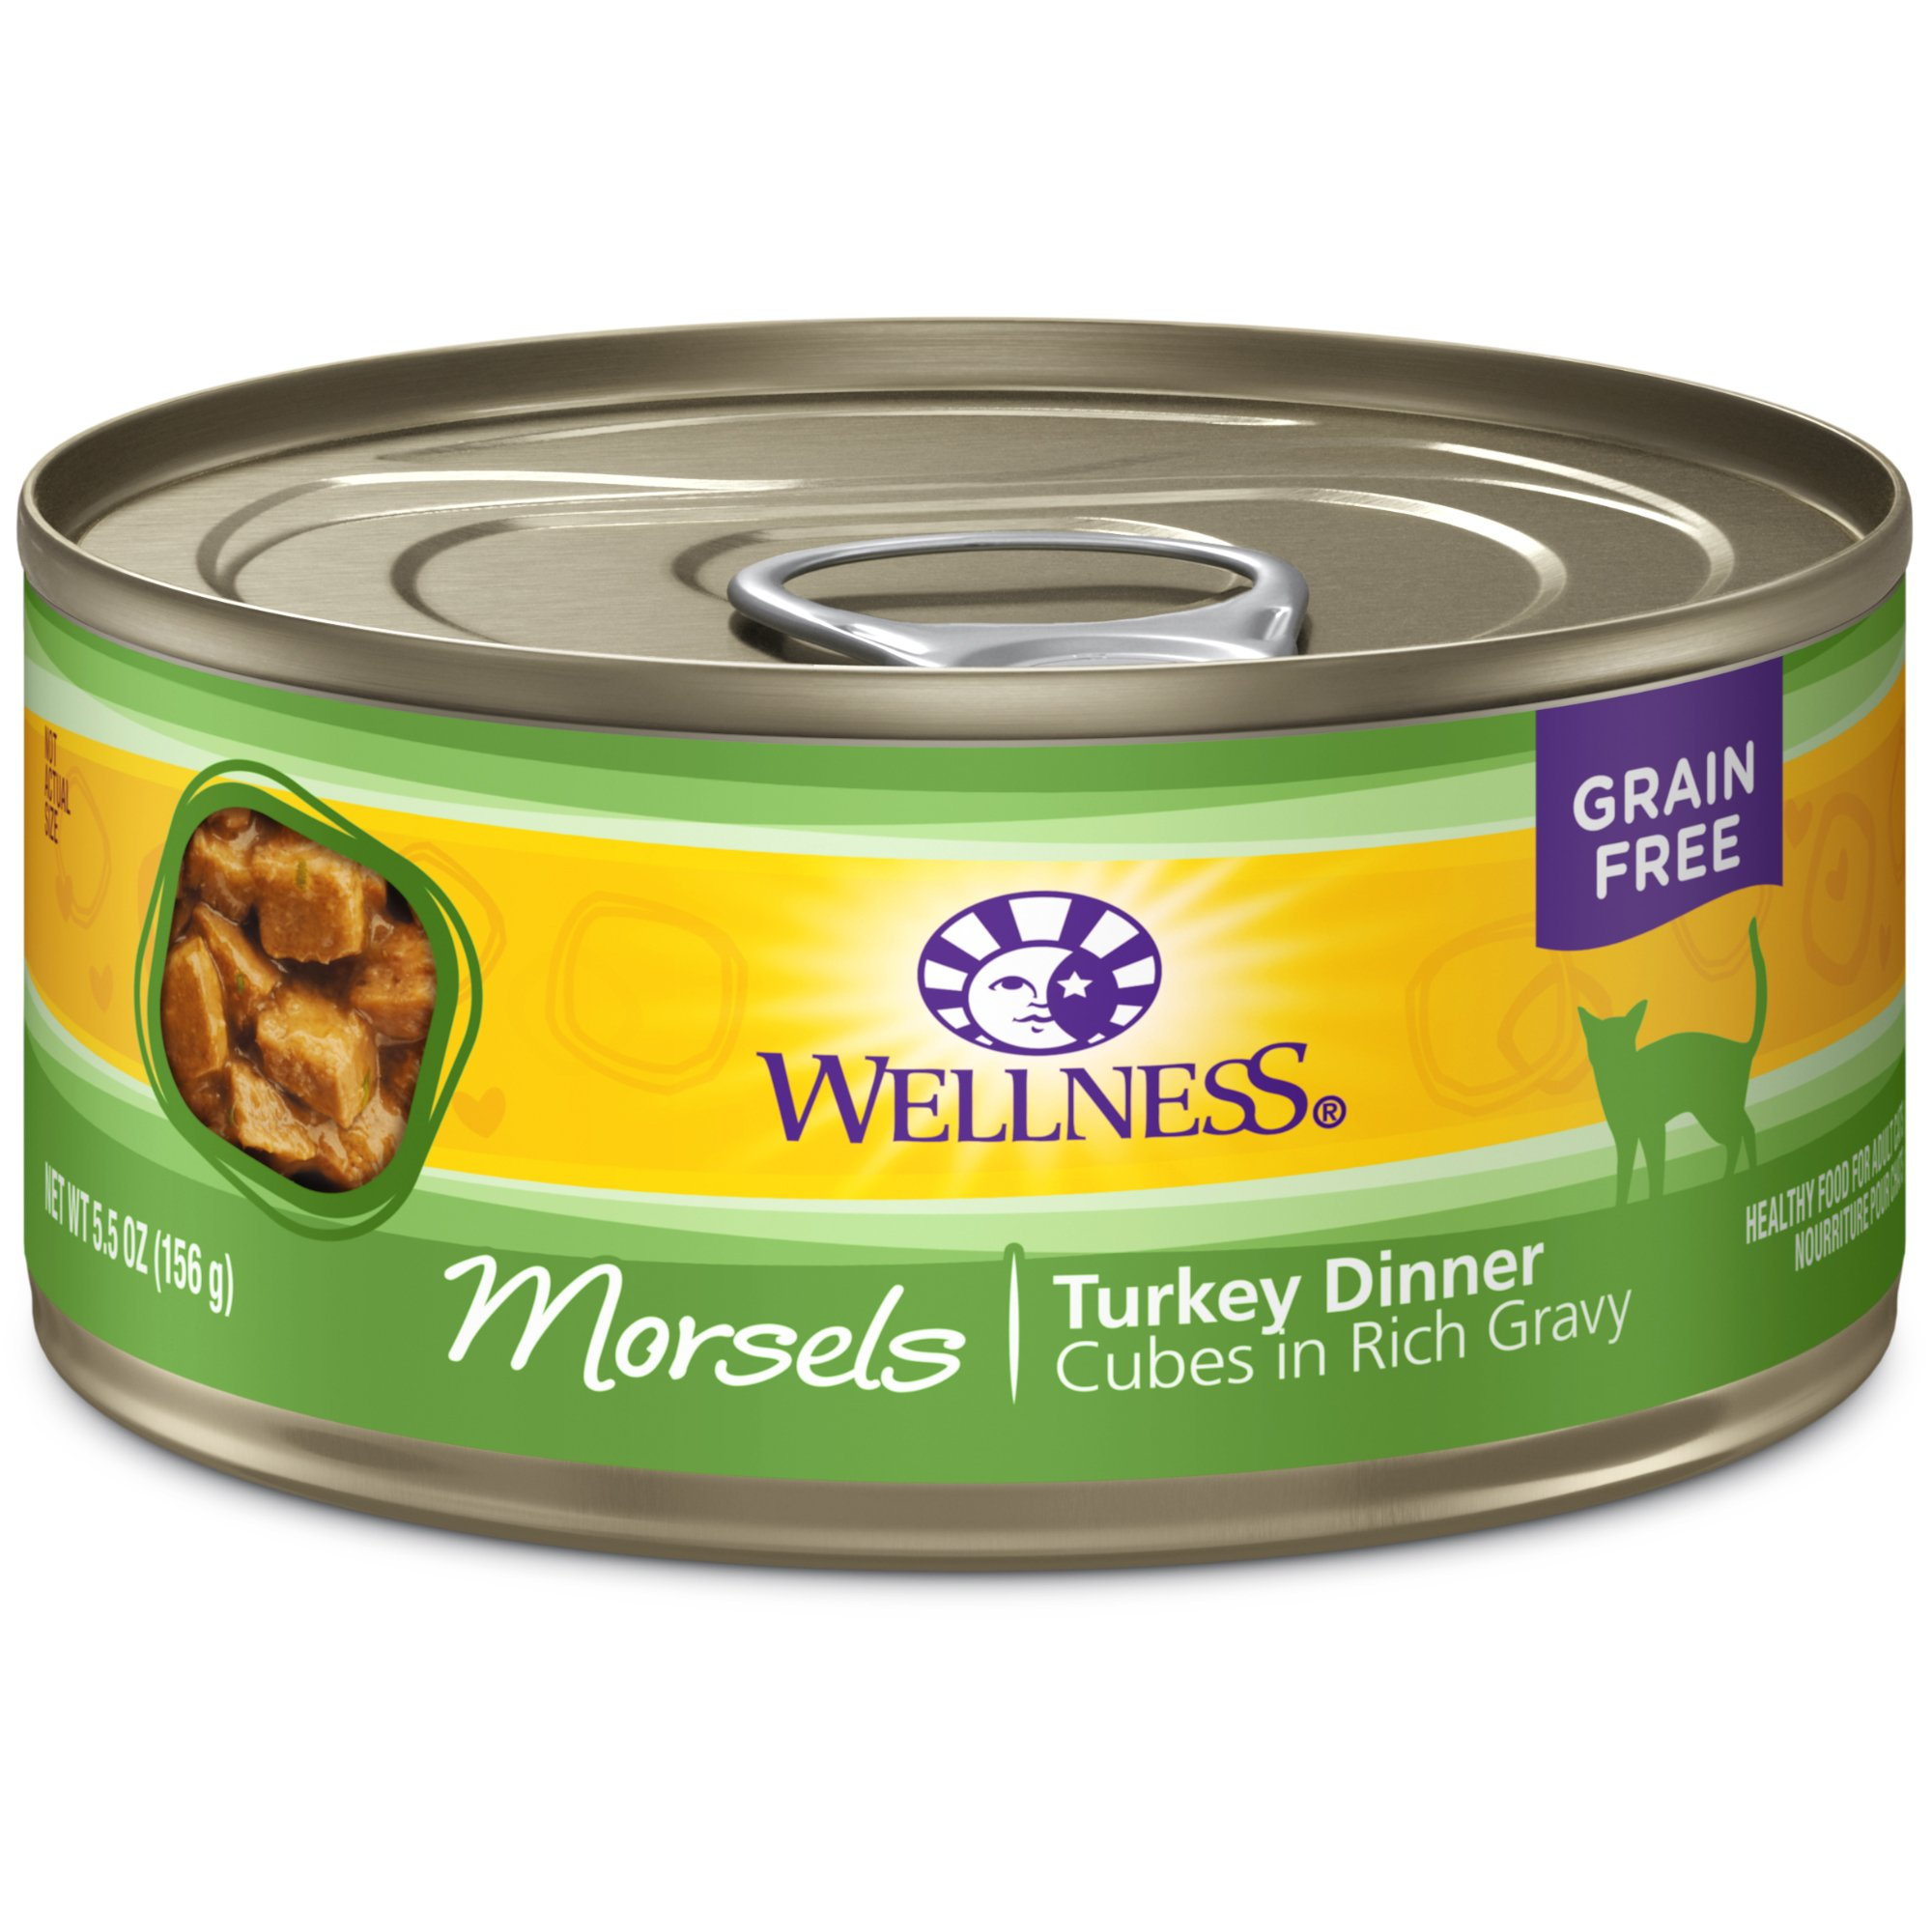 Wellness Complete Health Natural Grain Free Wet Canned Cat Food, Morsels Turkey Dinner, 5.5-Ounce Can (Pack Of 24) by Wellness Natural Pet Food